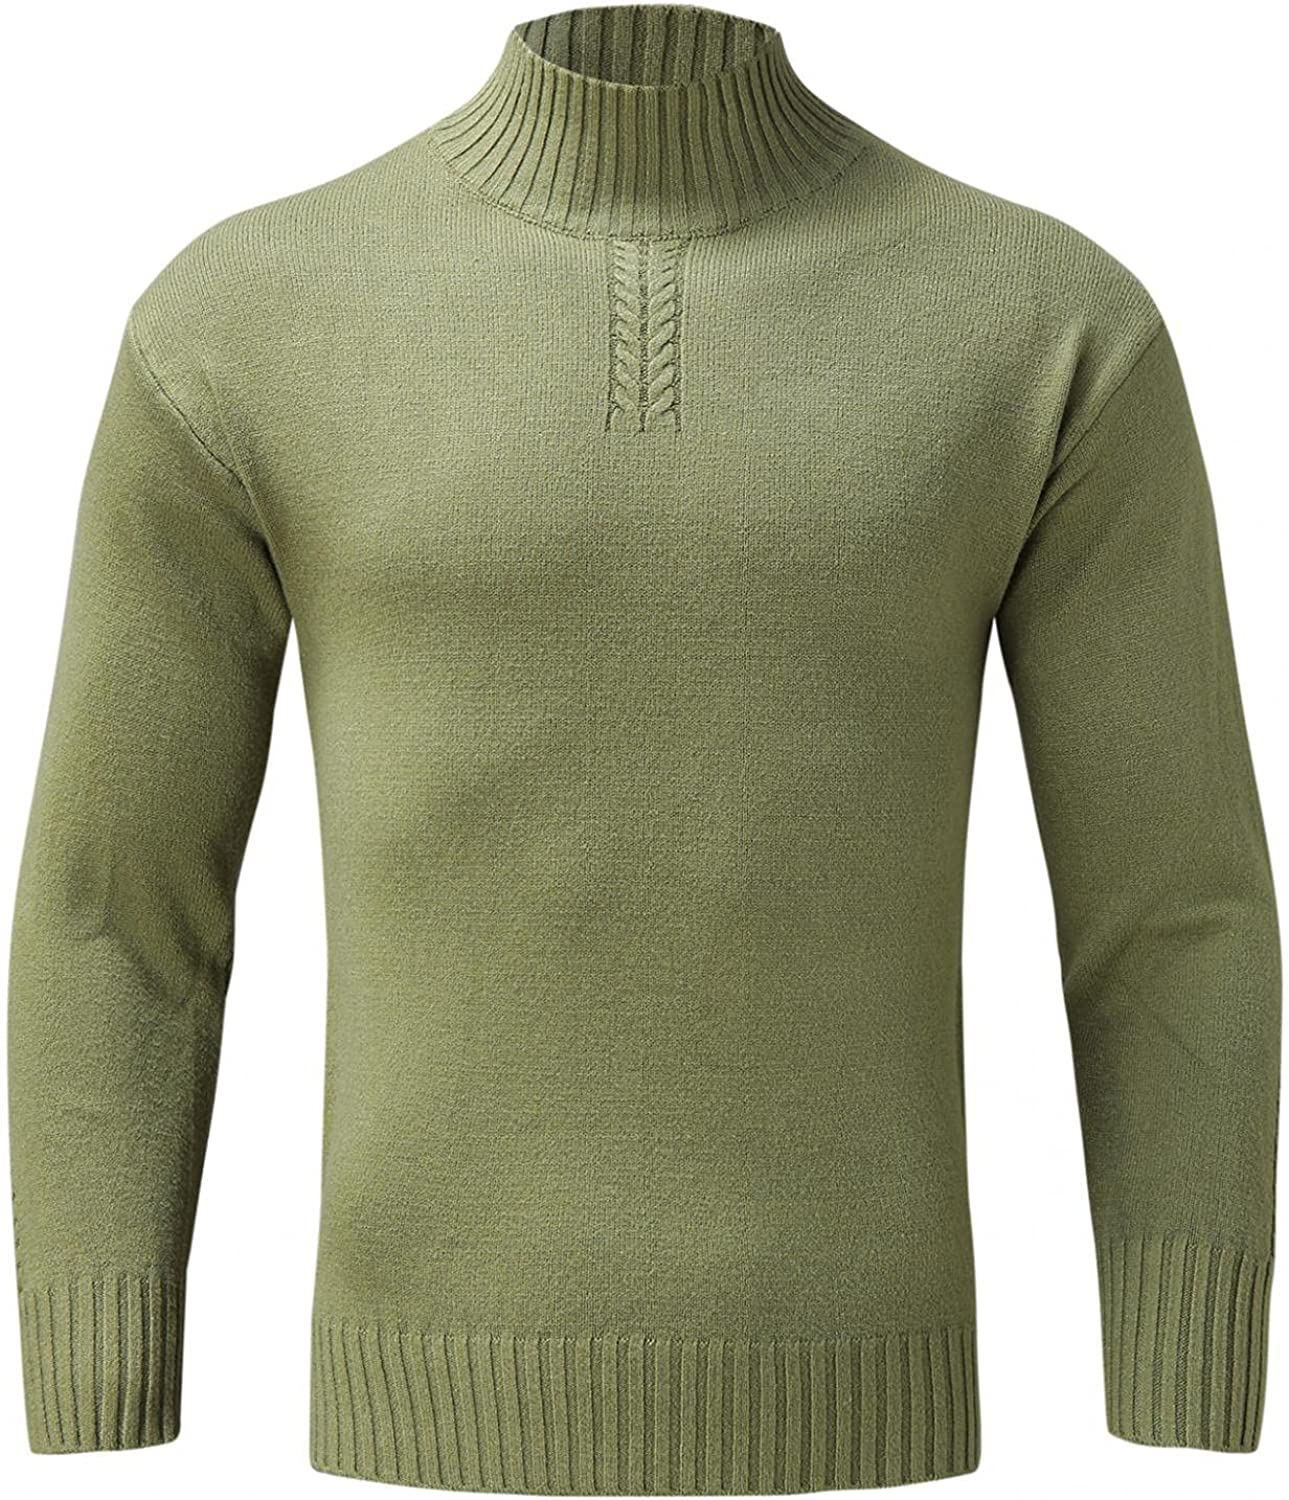 XUNFUN Men's Casual Slim Fit Mock Turtleneck Sweater Lightweight Basic Solid Color Knitted Thermal Pullover Tops Sweaters